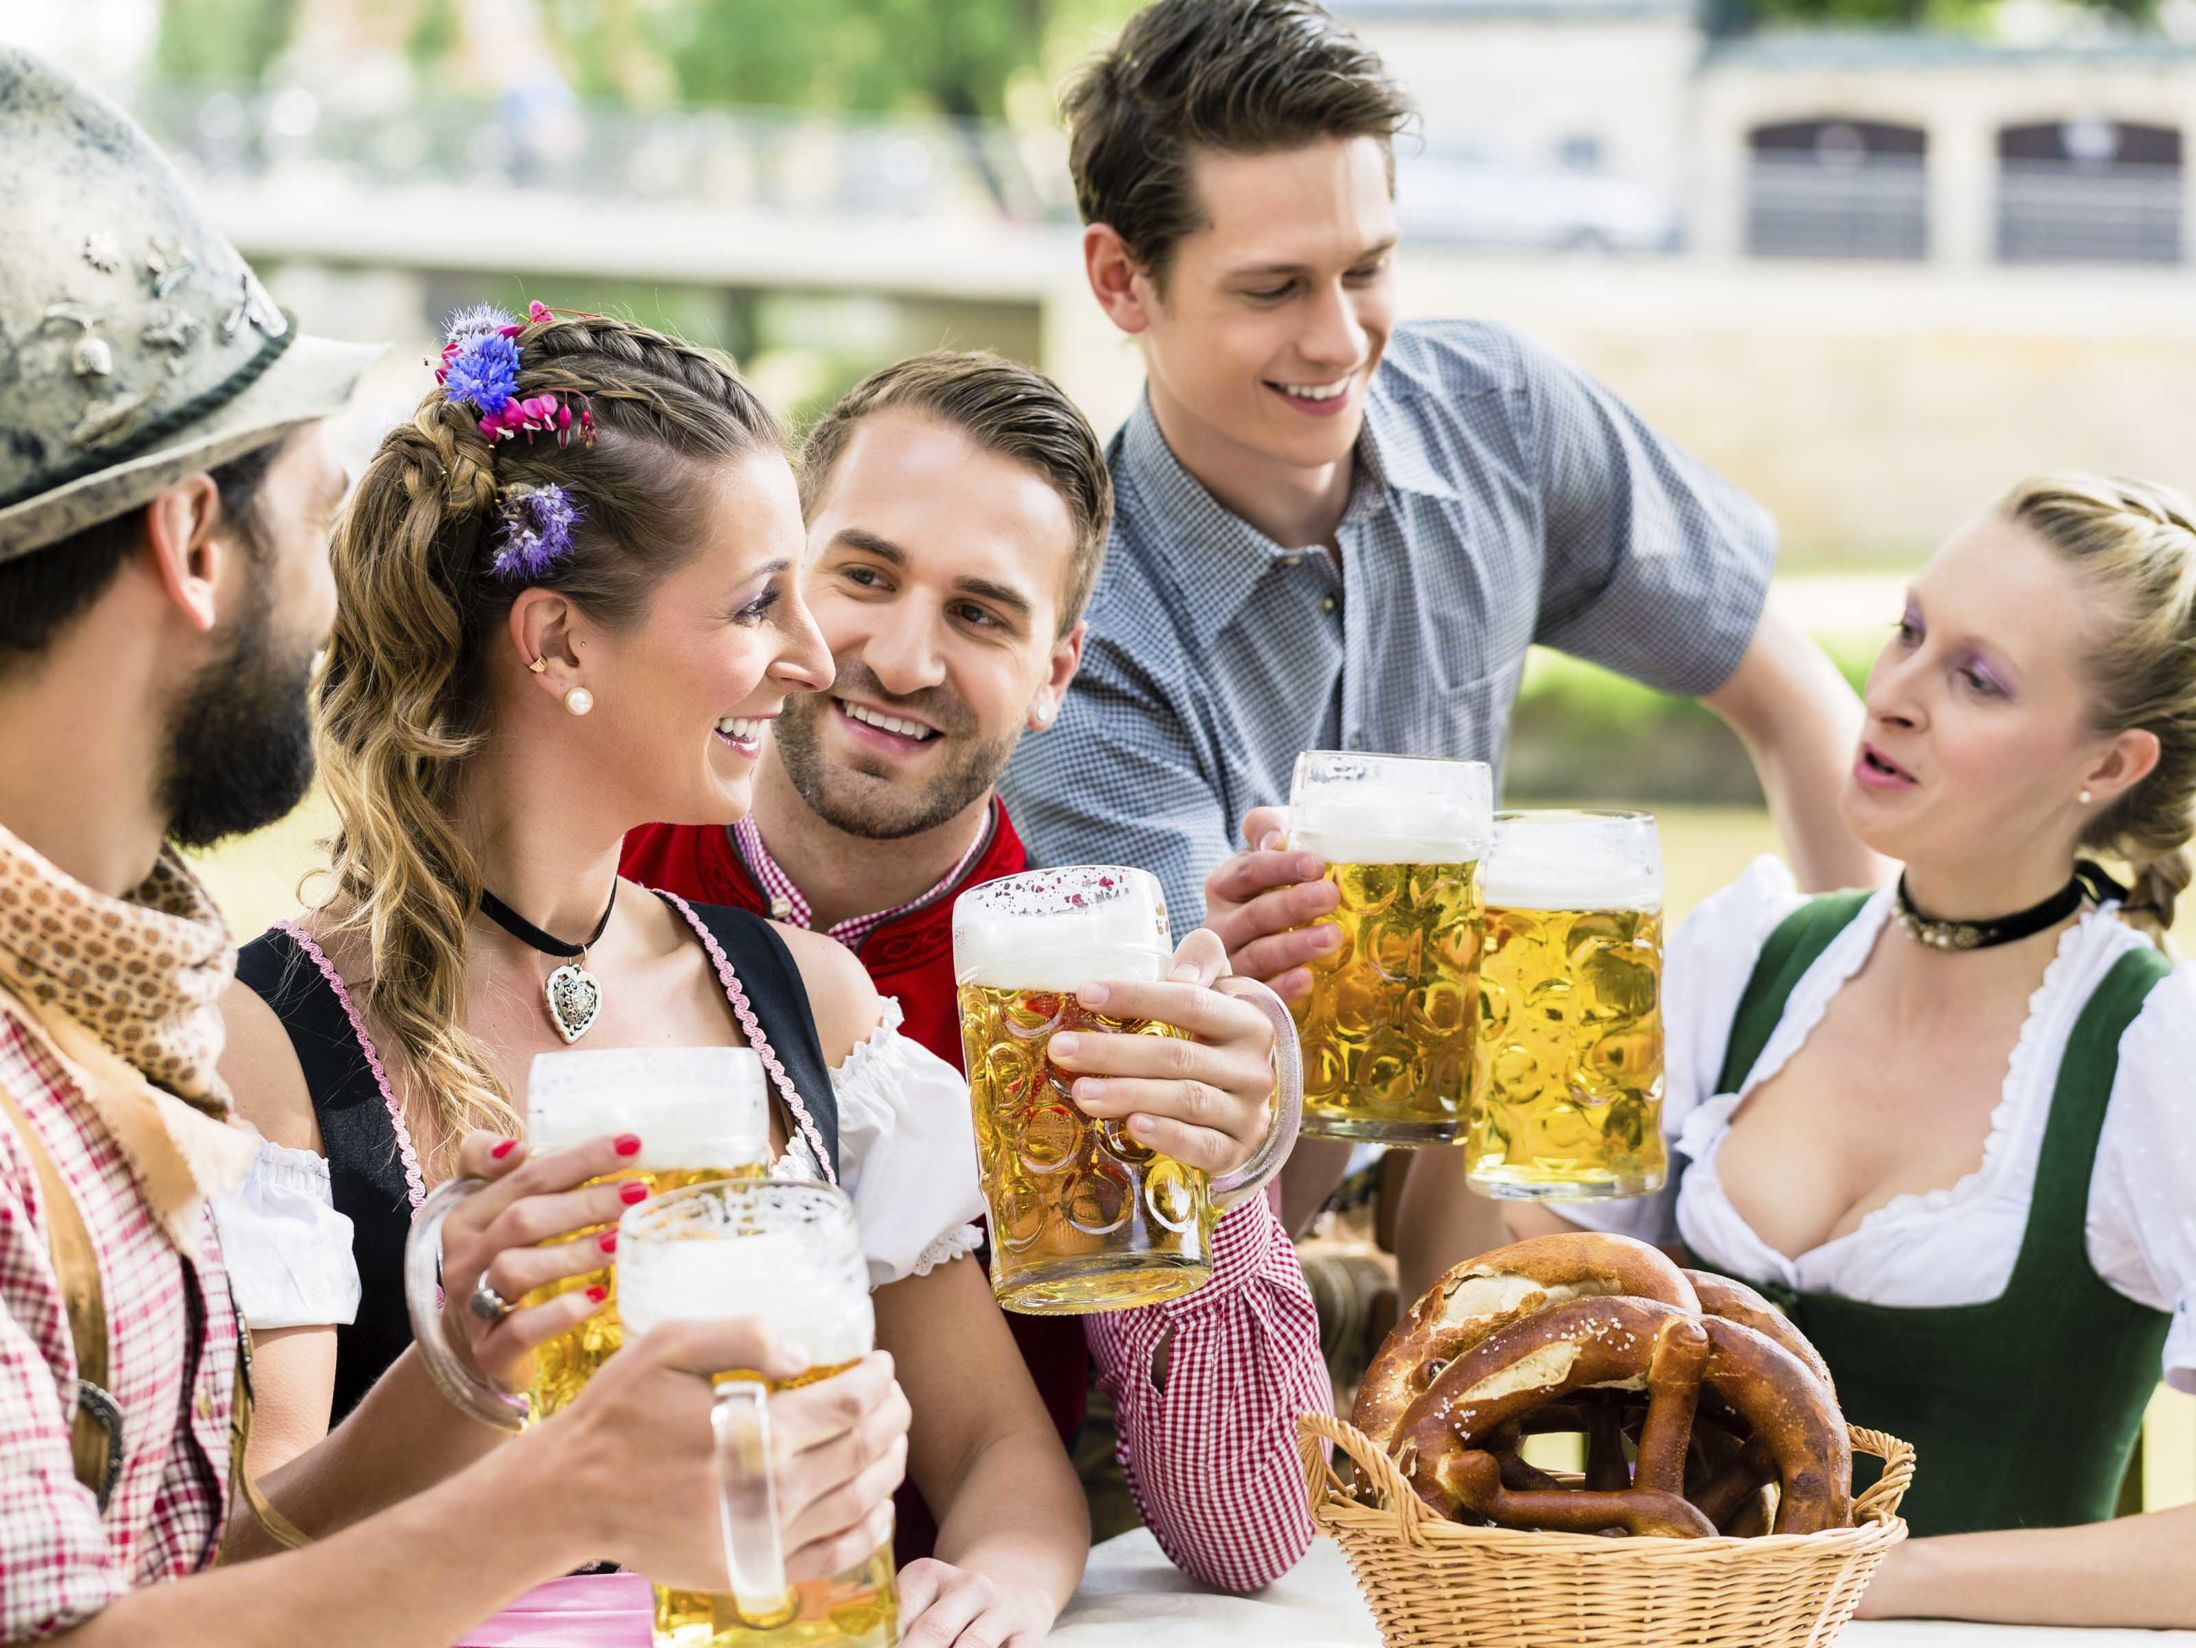 Manchester Events to Know About - Oktoberfest